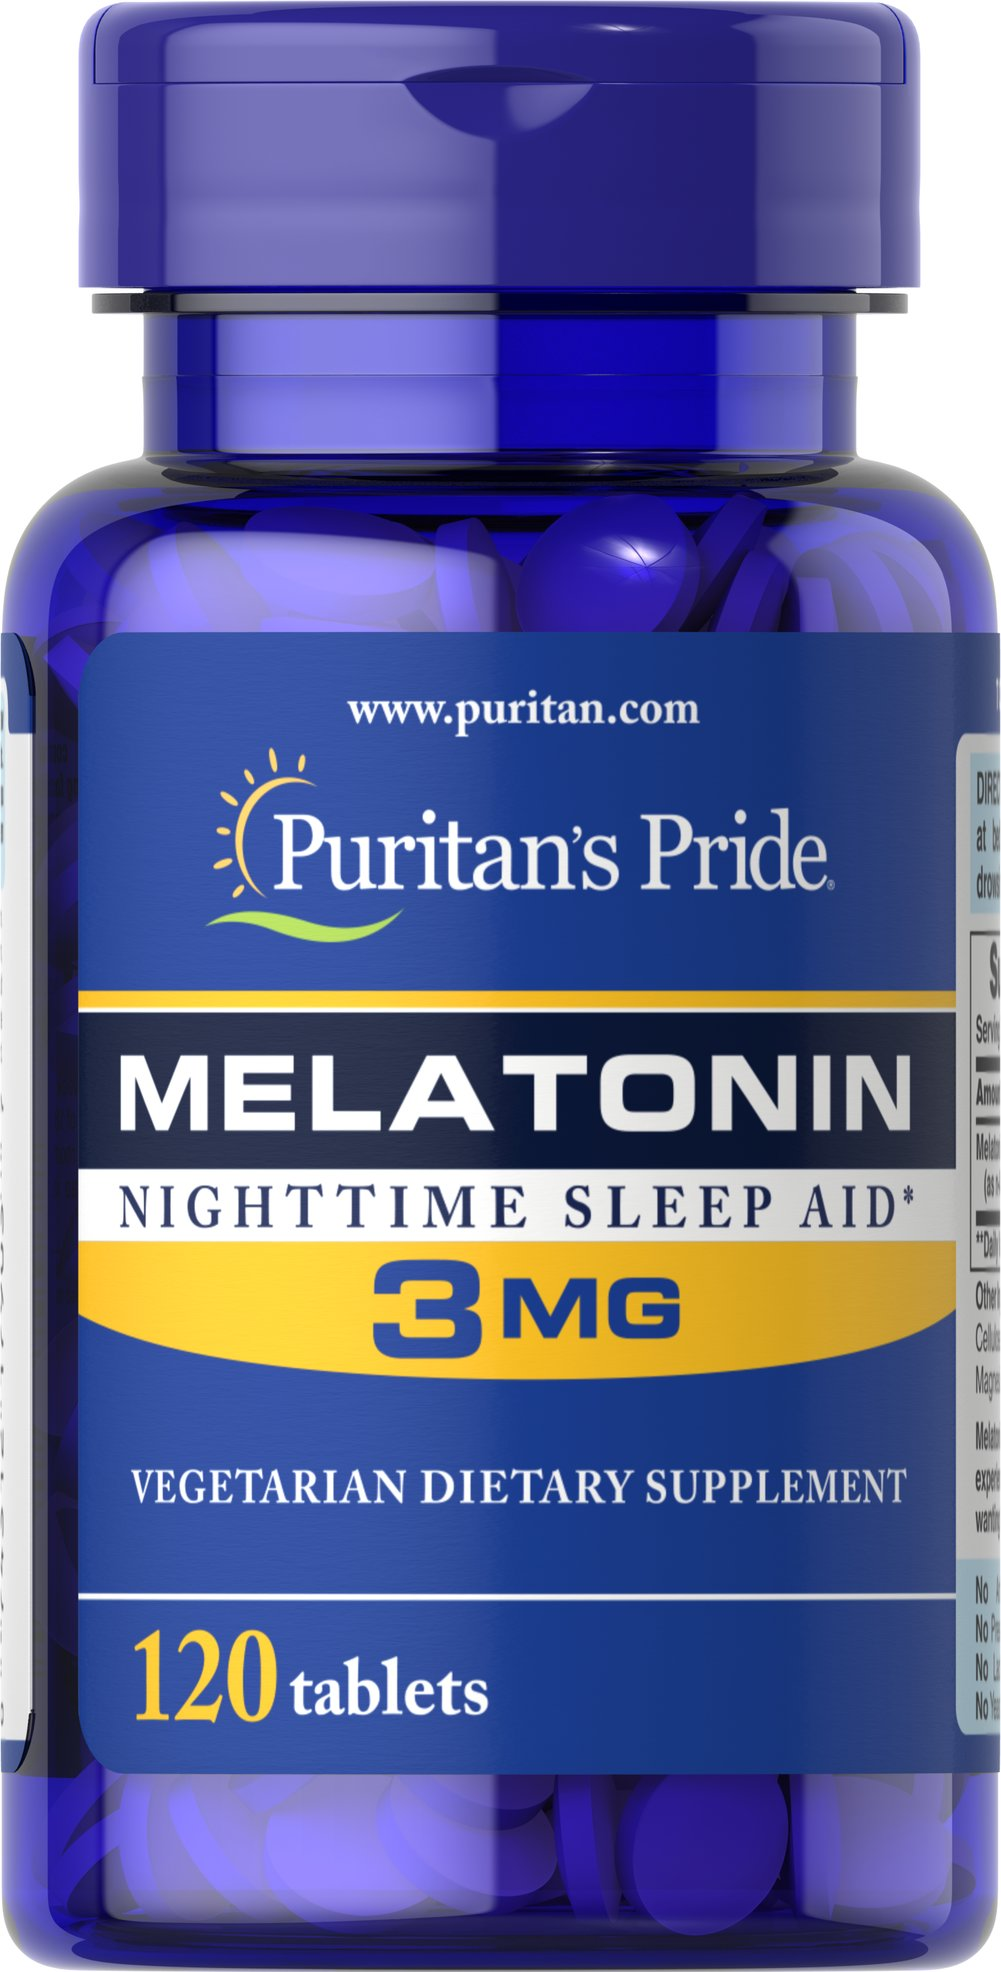 Melatonin 3 mg  120 Tablets 3 mg $7.99